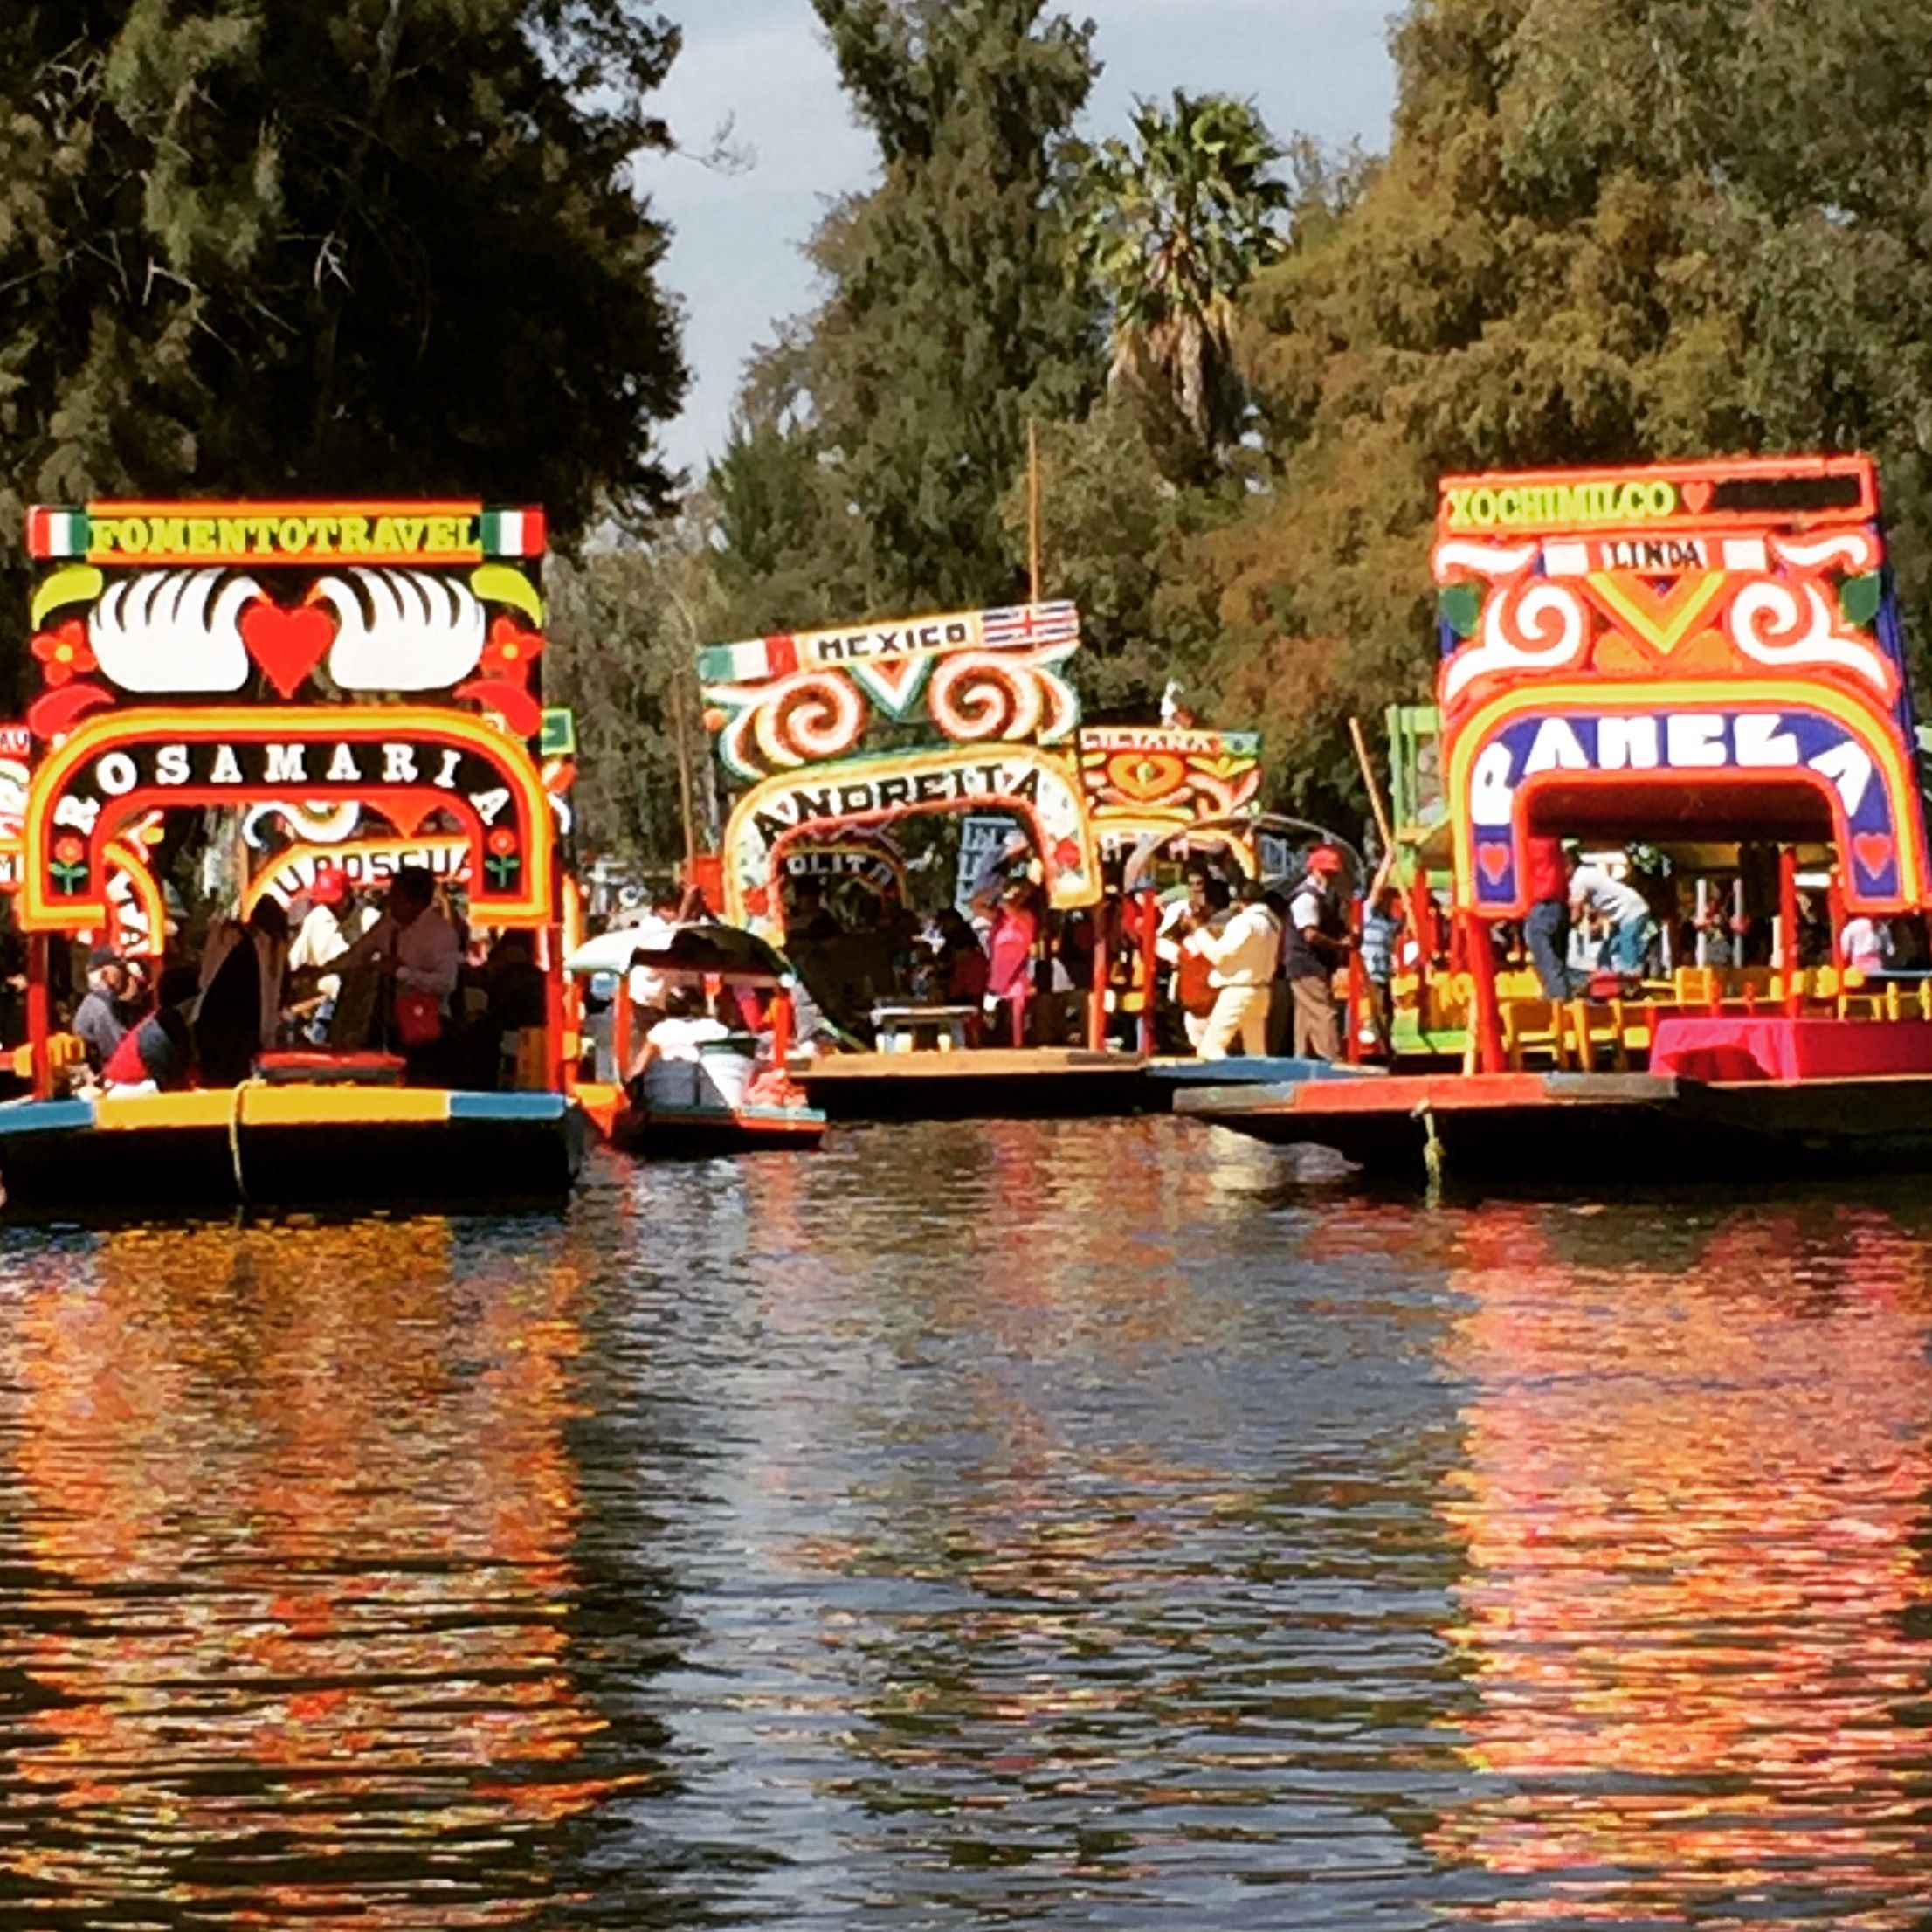 when visiting mexico city xochitlmilco should be on your itinerary rh pinterest com